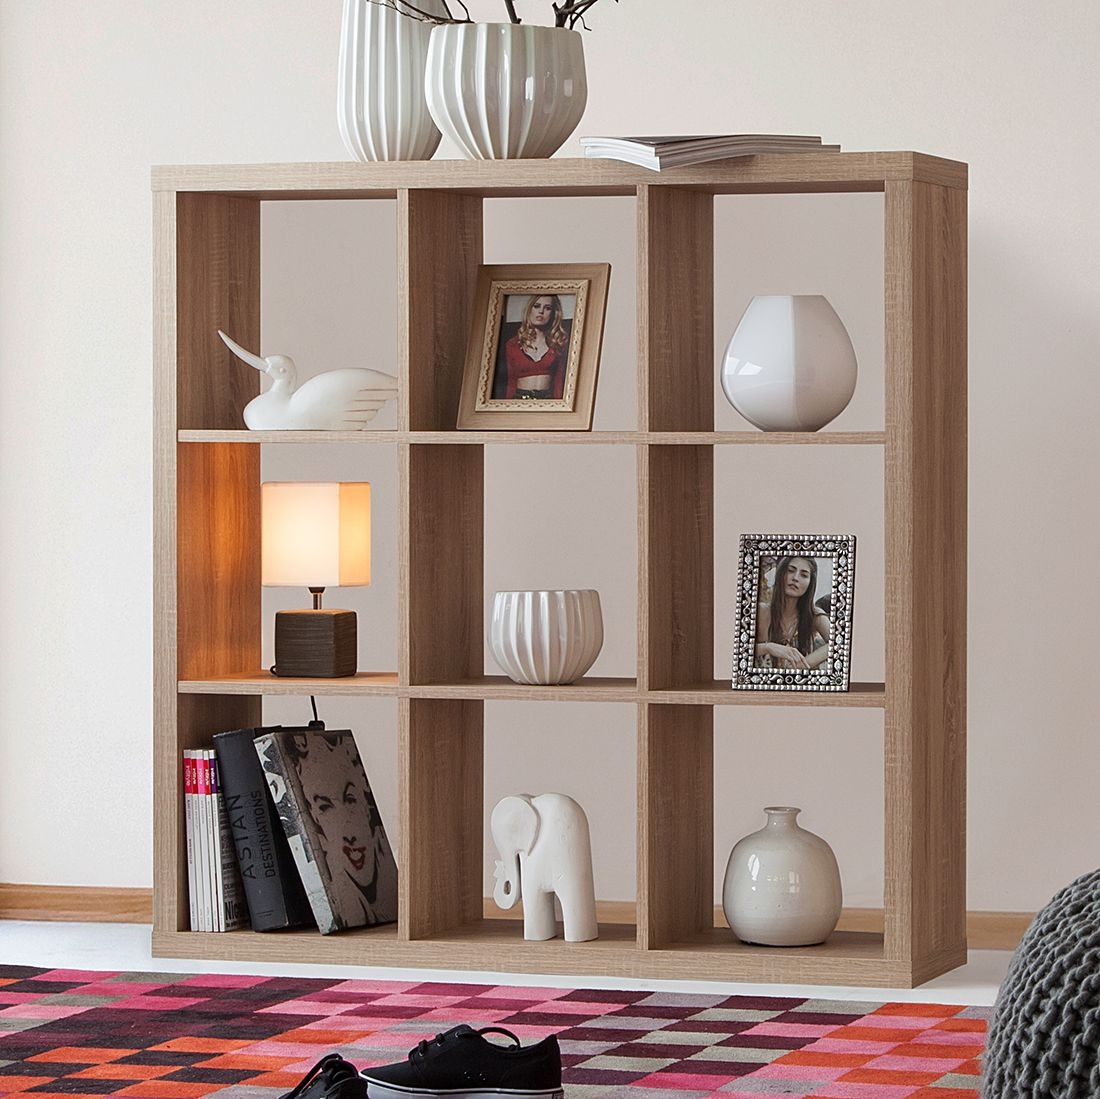 Regal Shelfy Fredriks Regal Shelfy Eiche Hell Raumteiler BÜcherregal